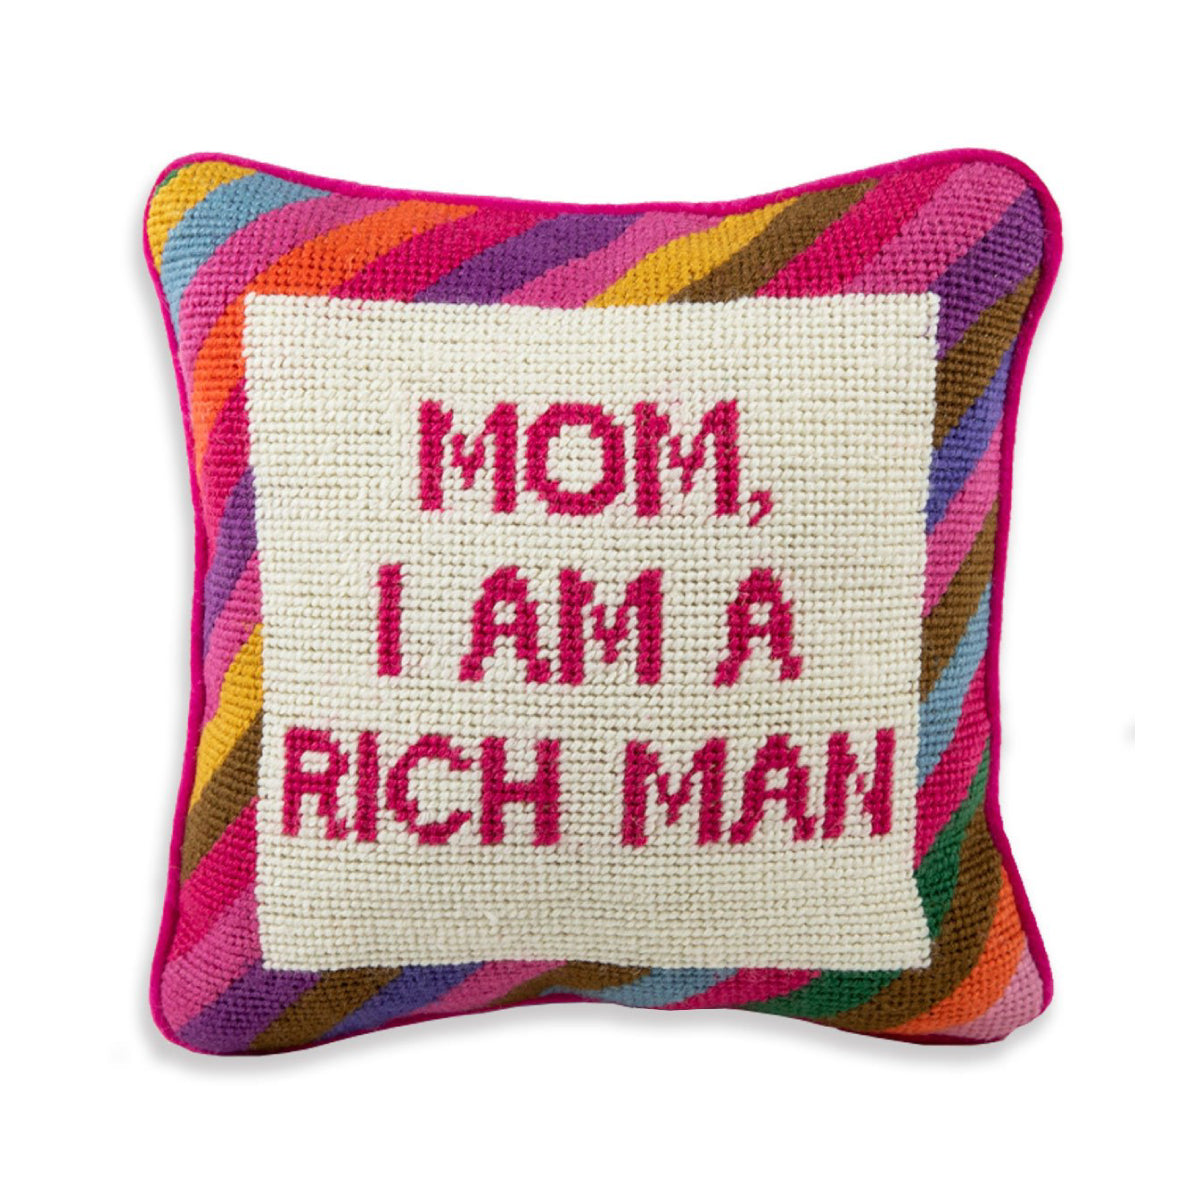 Furbish Studio - Cher Knows Best Needlepoint Pillow with Mom I am a rich man saying